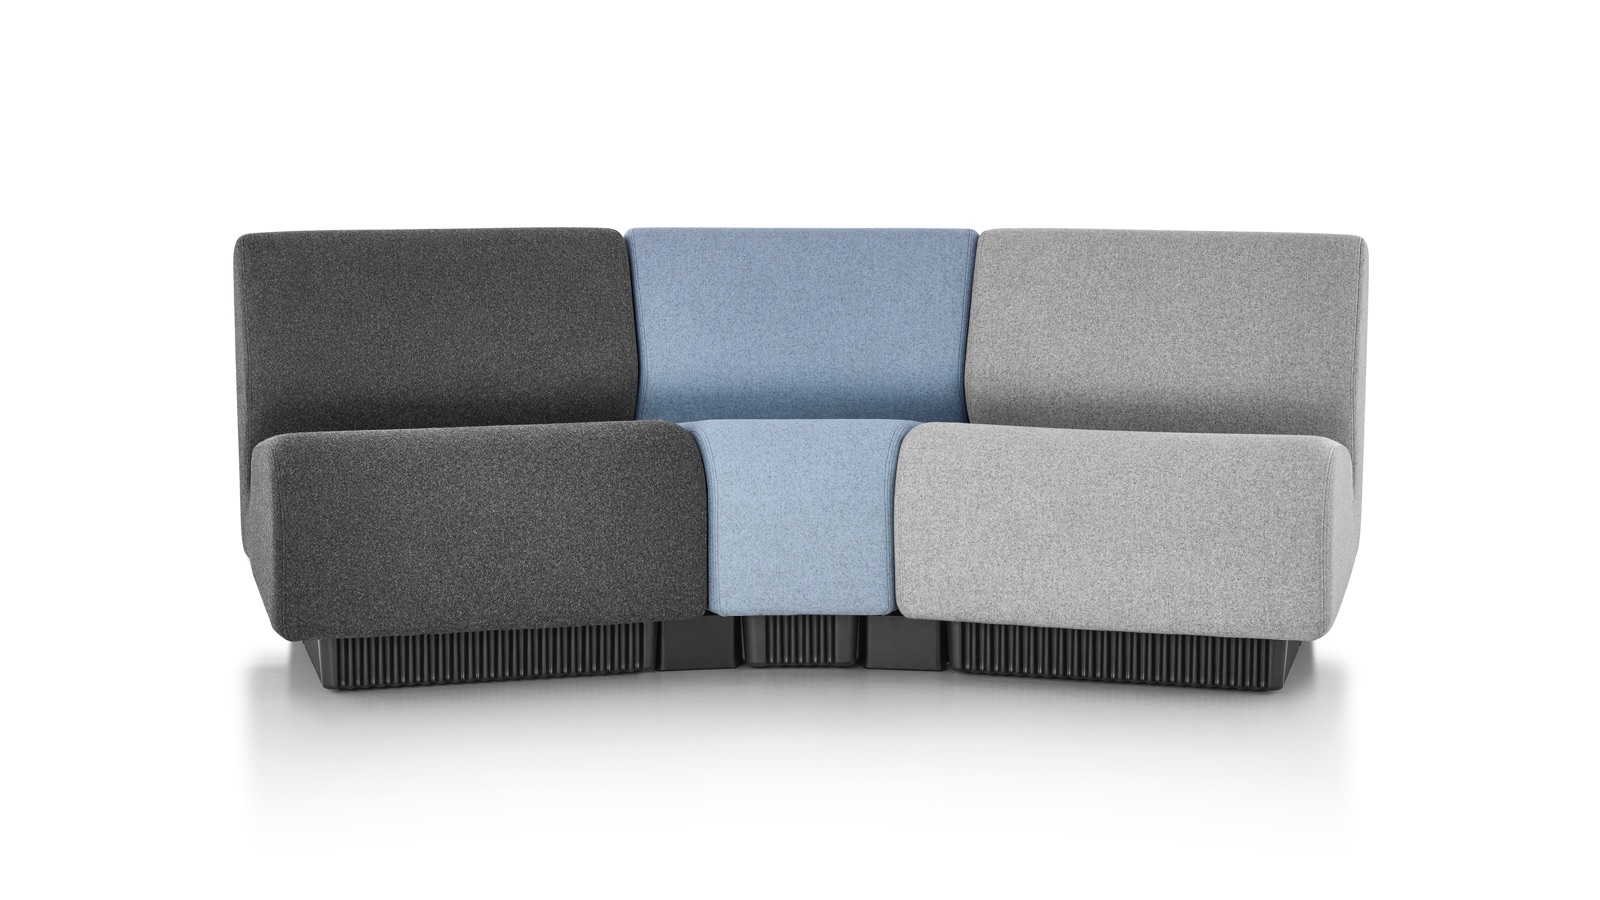 White sweep image of a three-seat section of Chadwick Modular Seating.